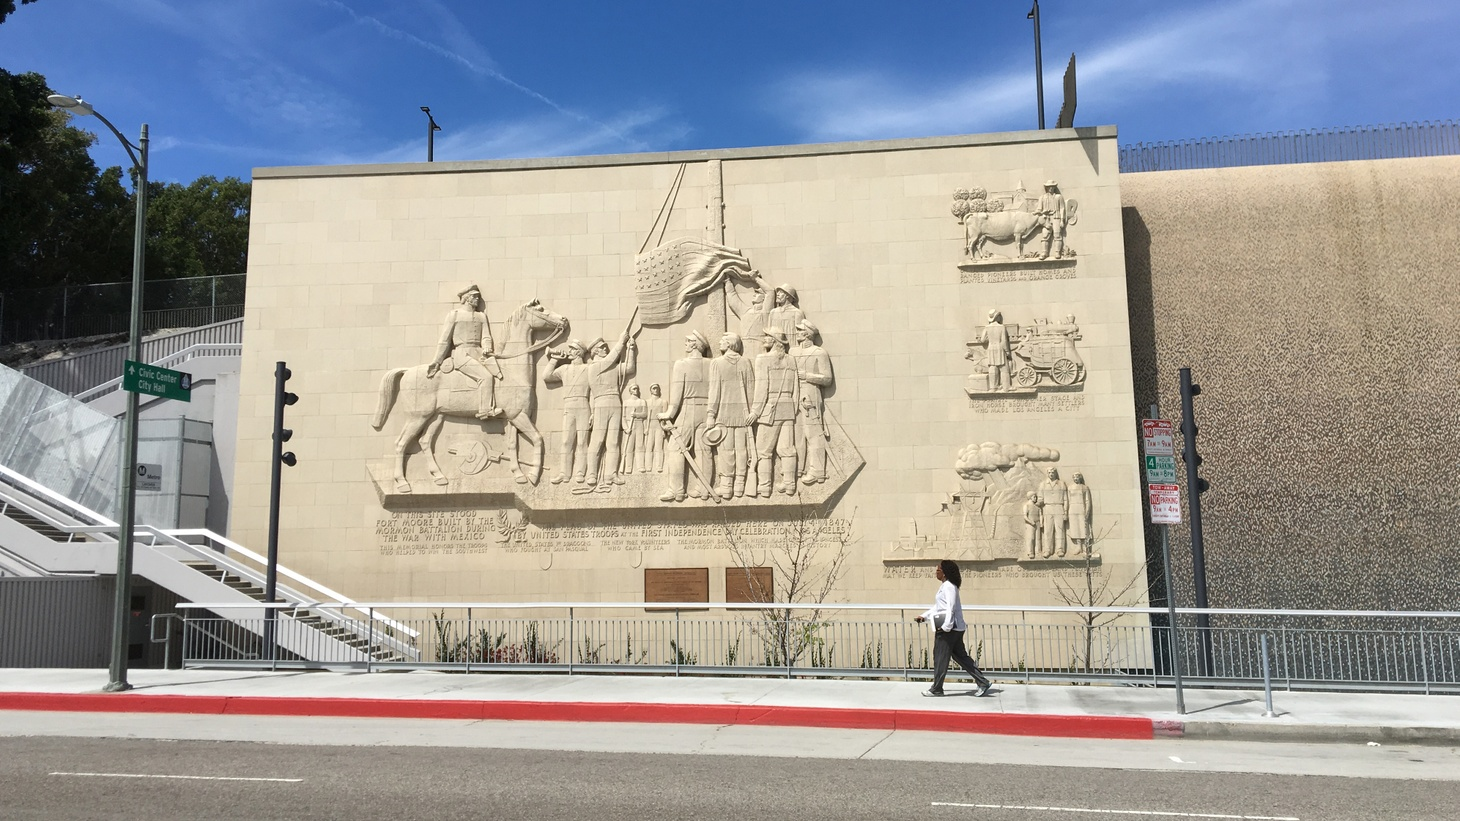 Fort Moore Pioneer Memorial recalls a patriotic moment in LA's history just before California became part of the United States.